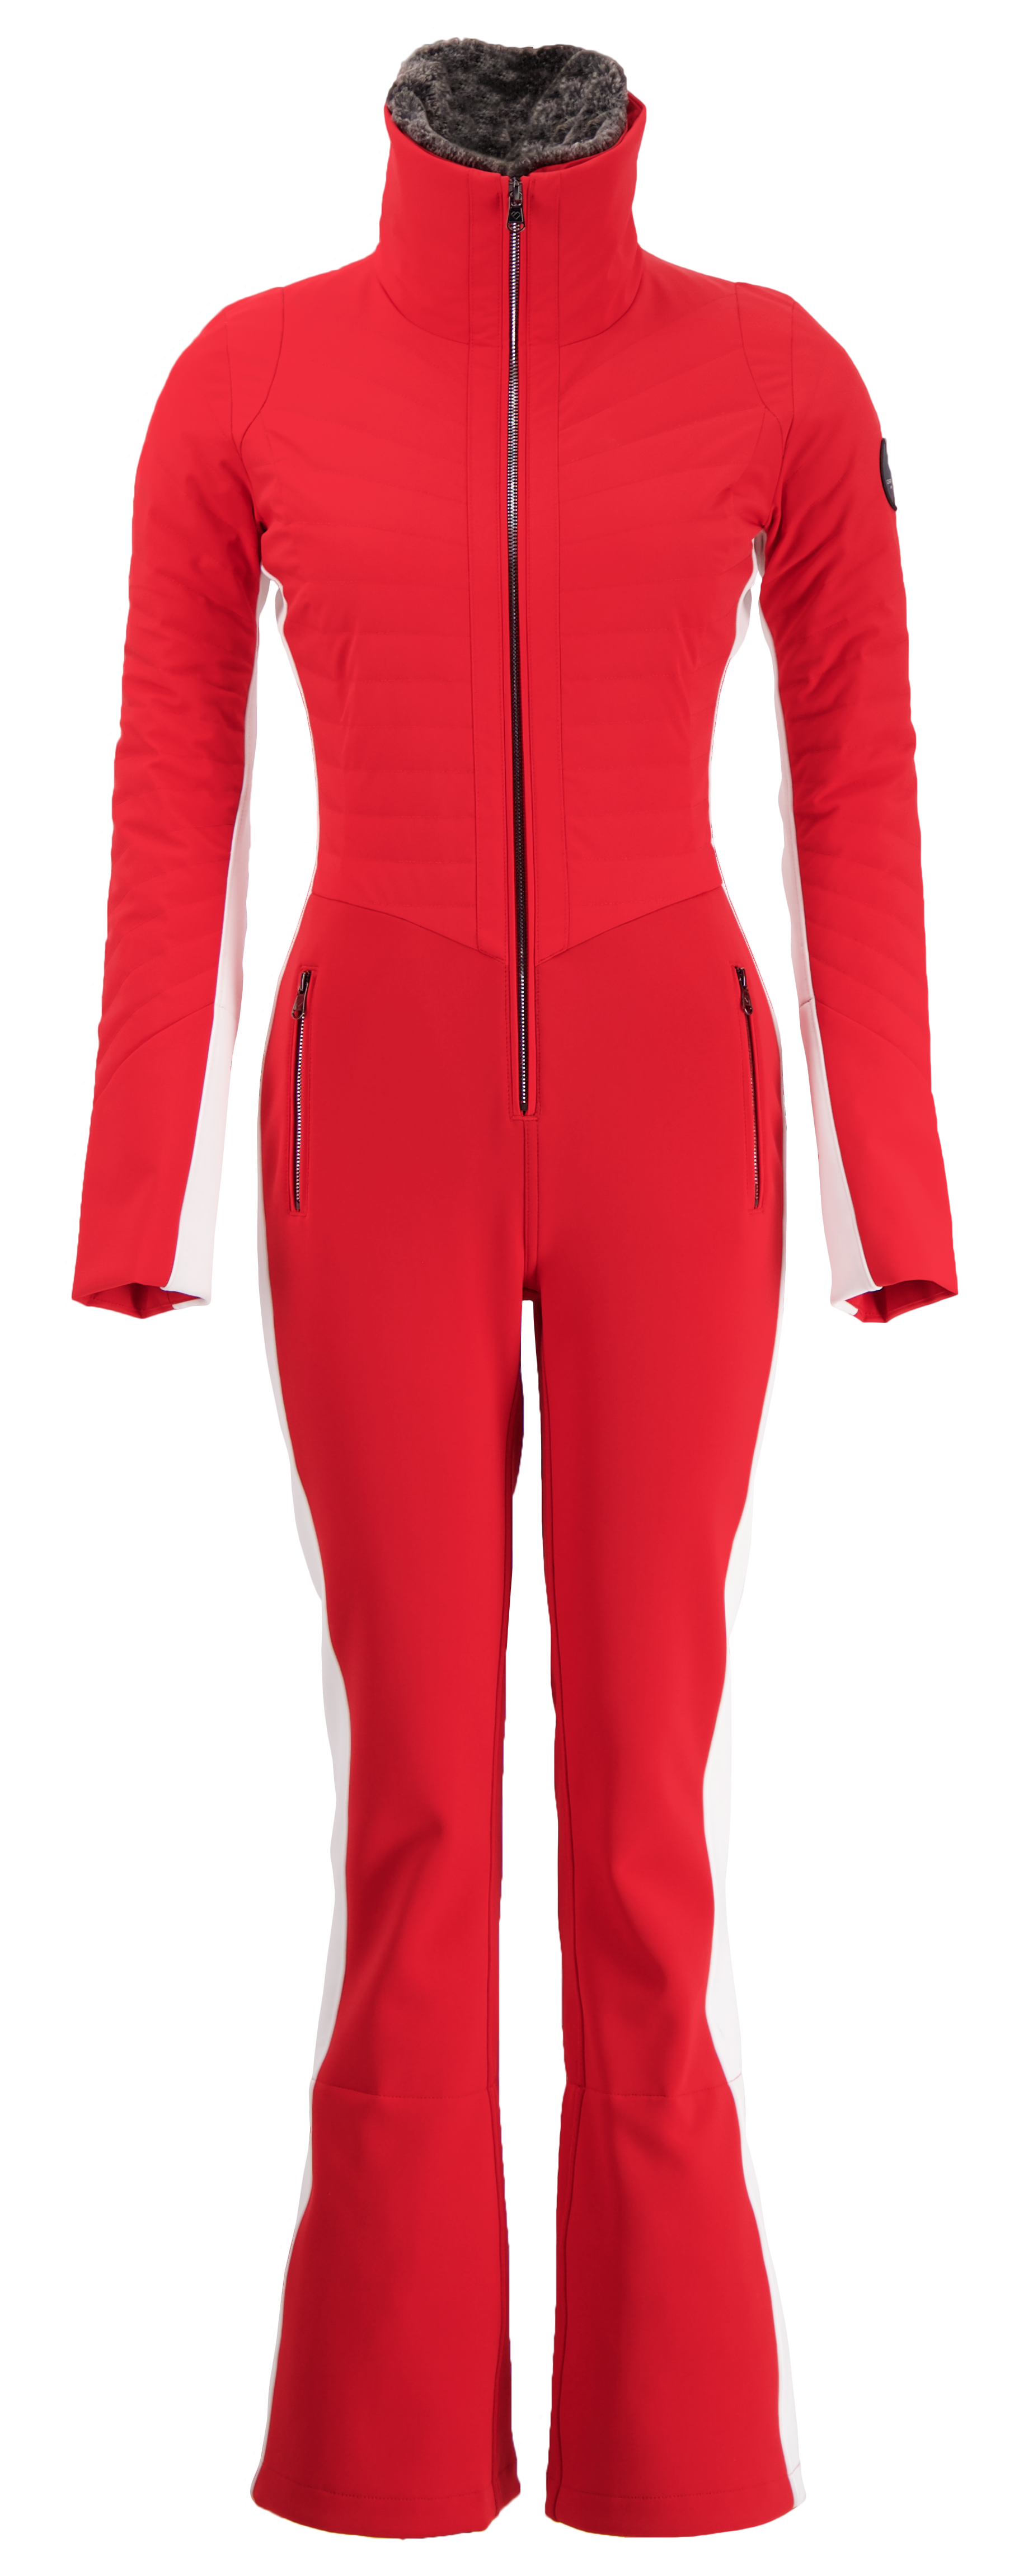 2016 Women's Rossignol Star 7